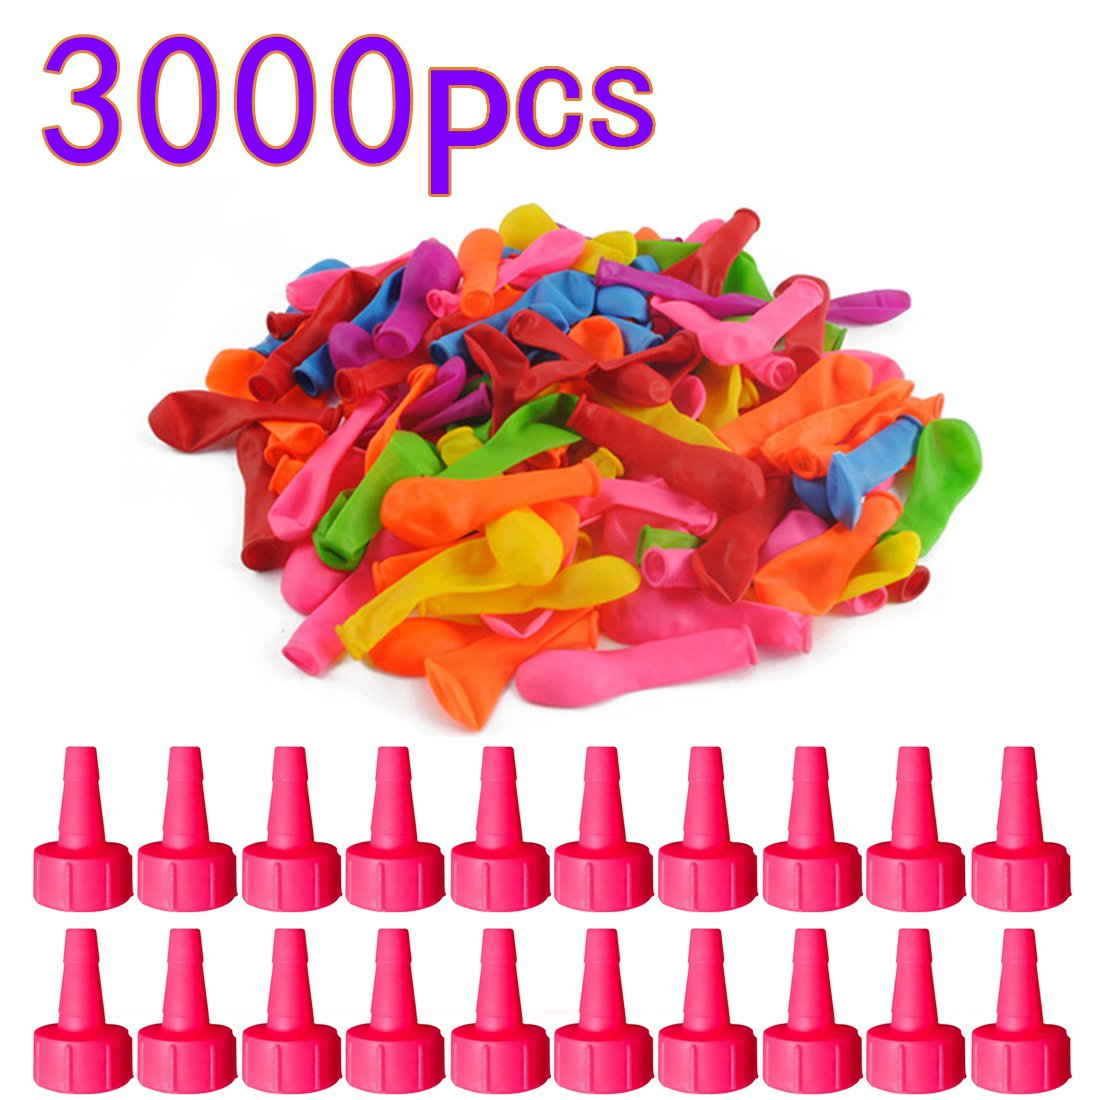 Yamix 3000 Pack Water Balloons Latex Water Bomb Balloons Fight Games for Kids Adults (Funnel Color Random) by Yamix